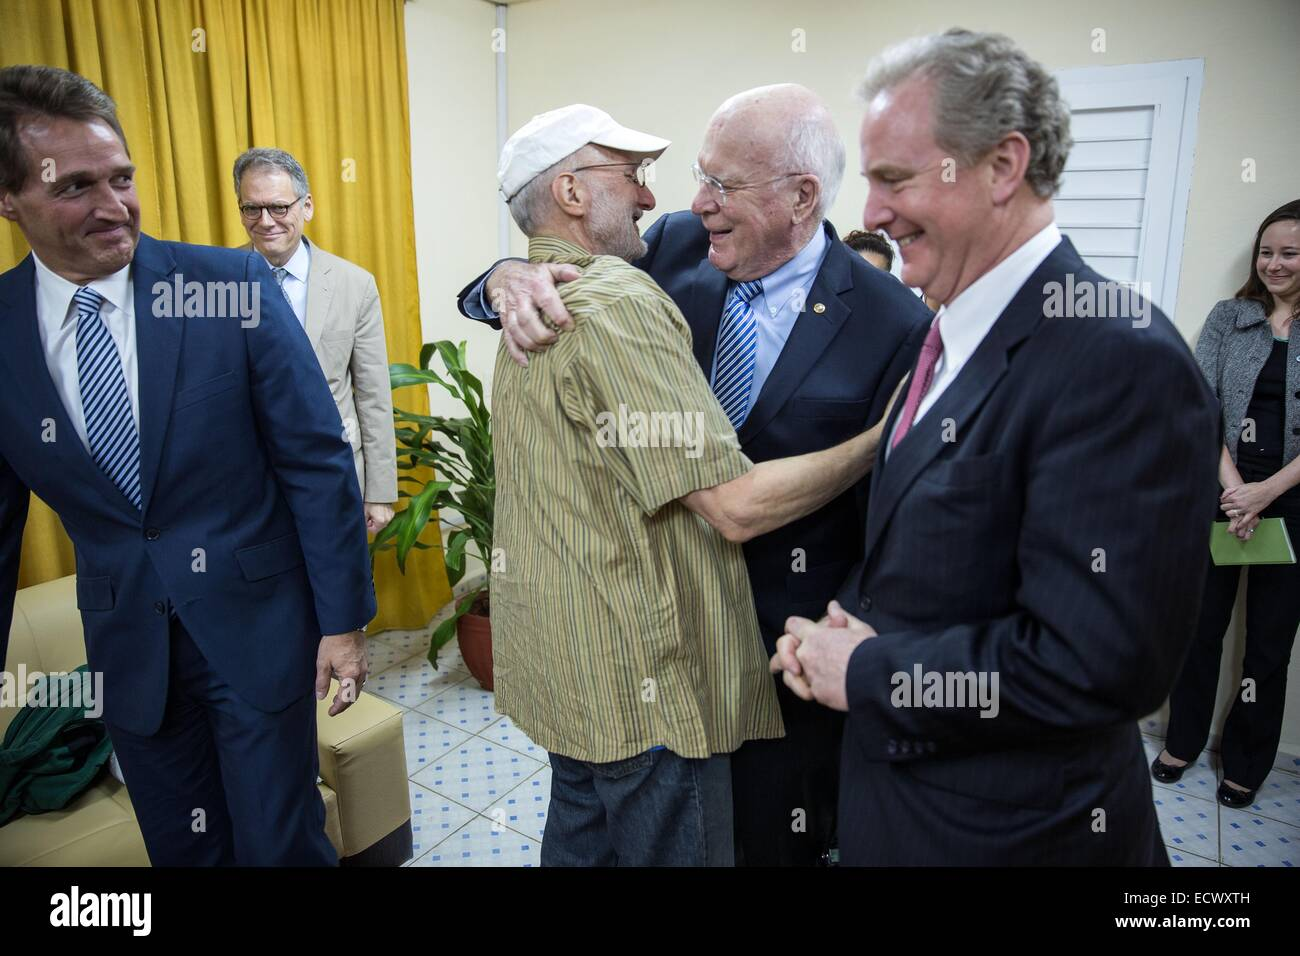 USAID contractor Alan Gross, imprisoned in Cuba for five years, greets Senators Patrick Leahy, Jeff Flake and Rep. - Stock Image